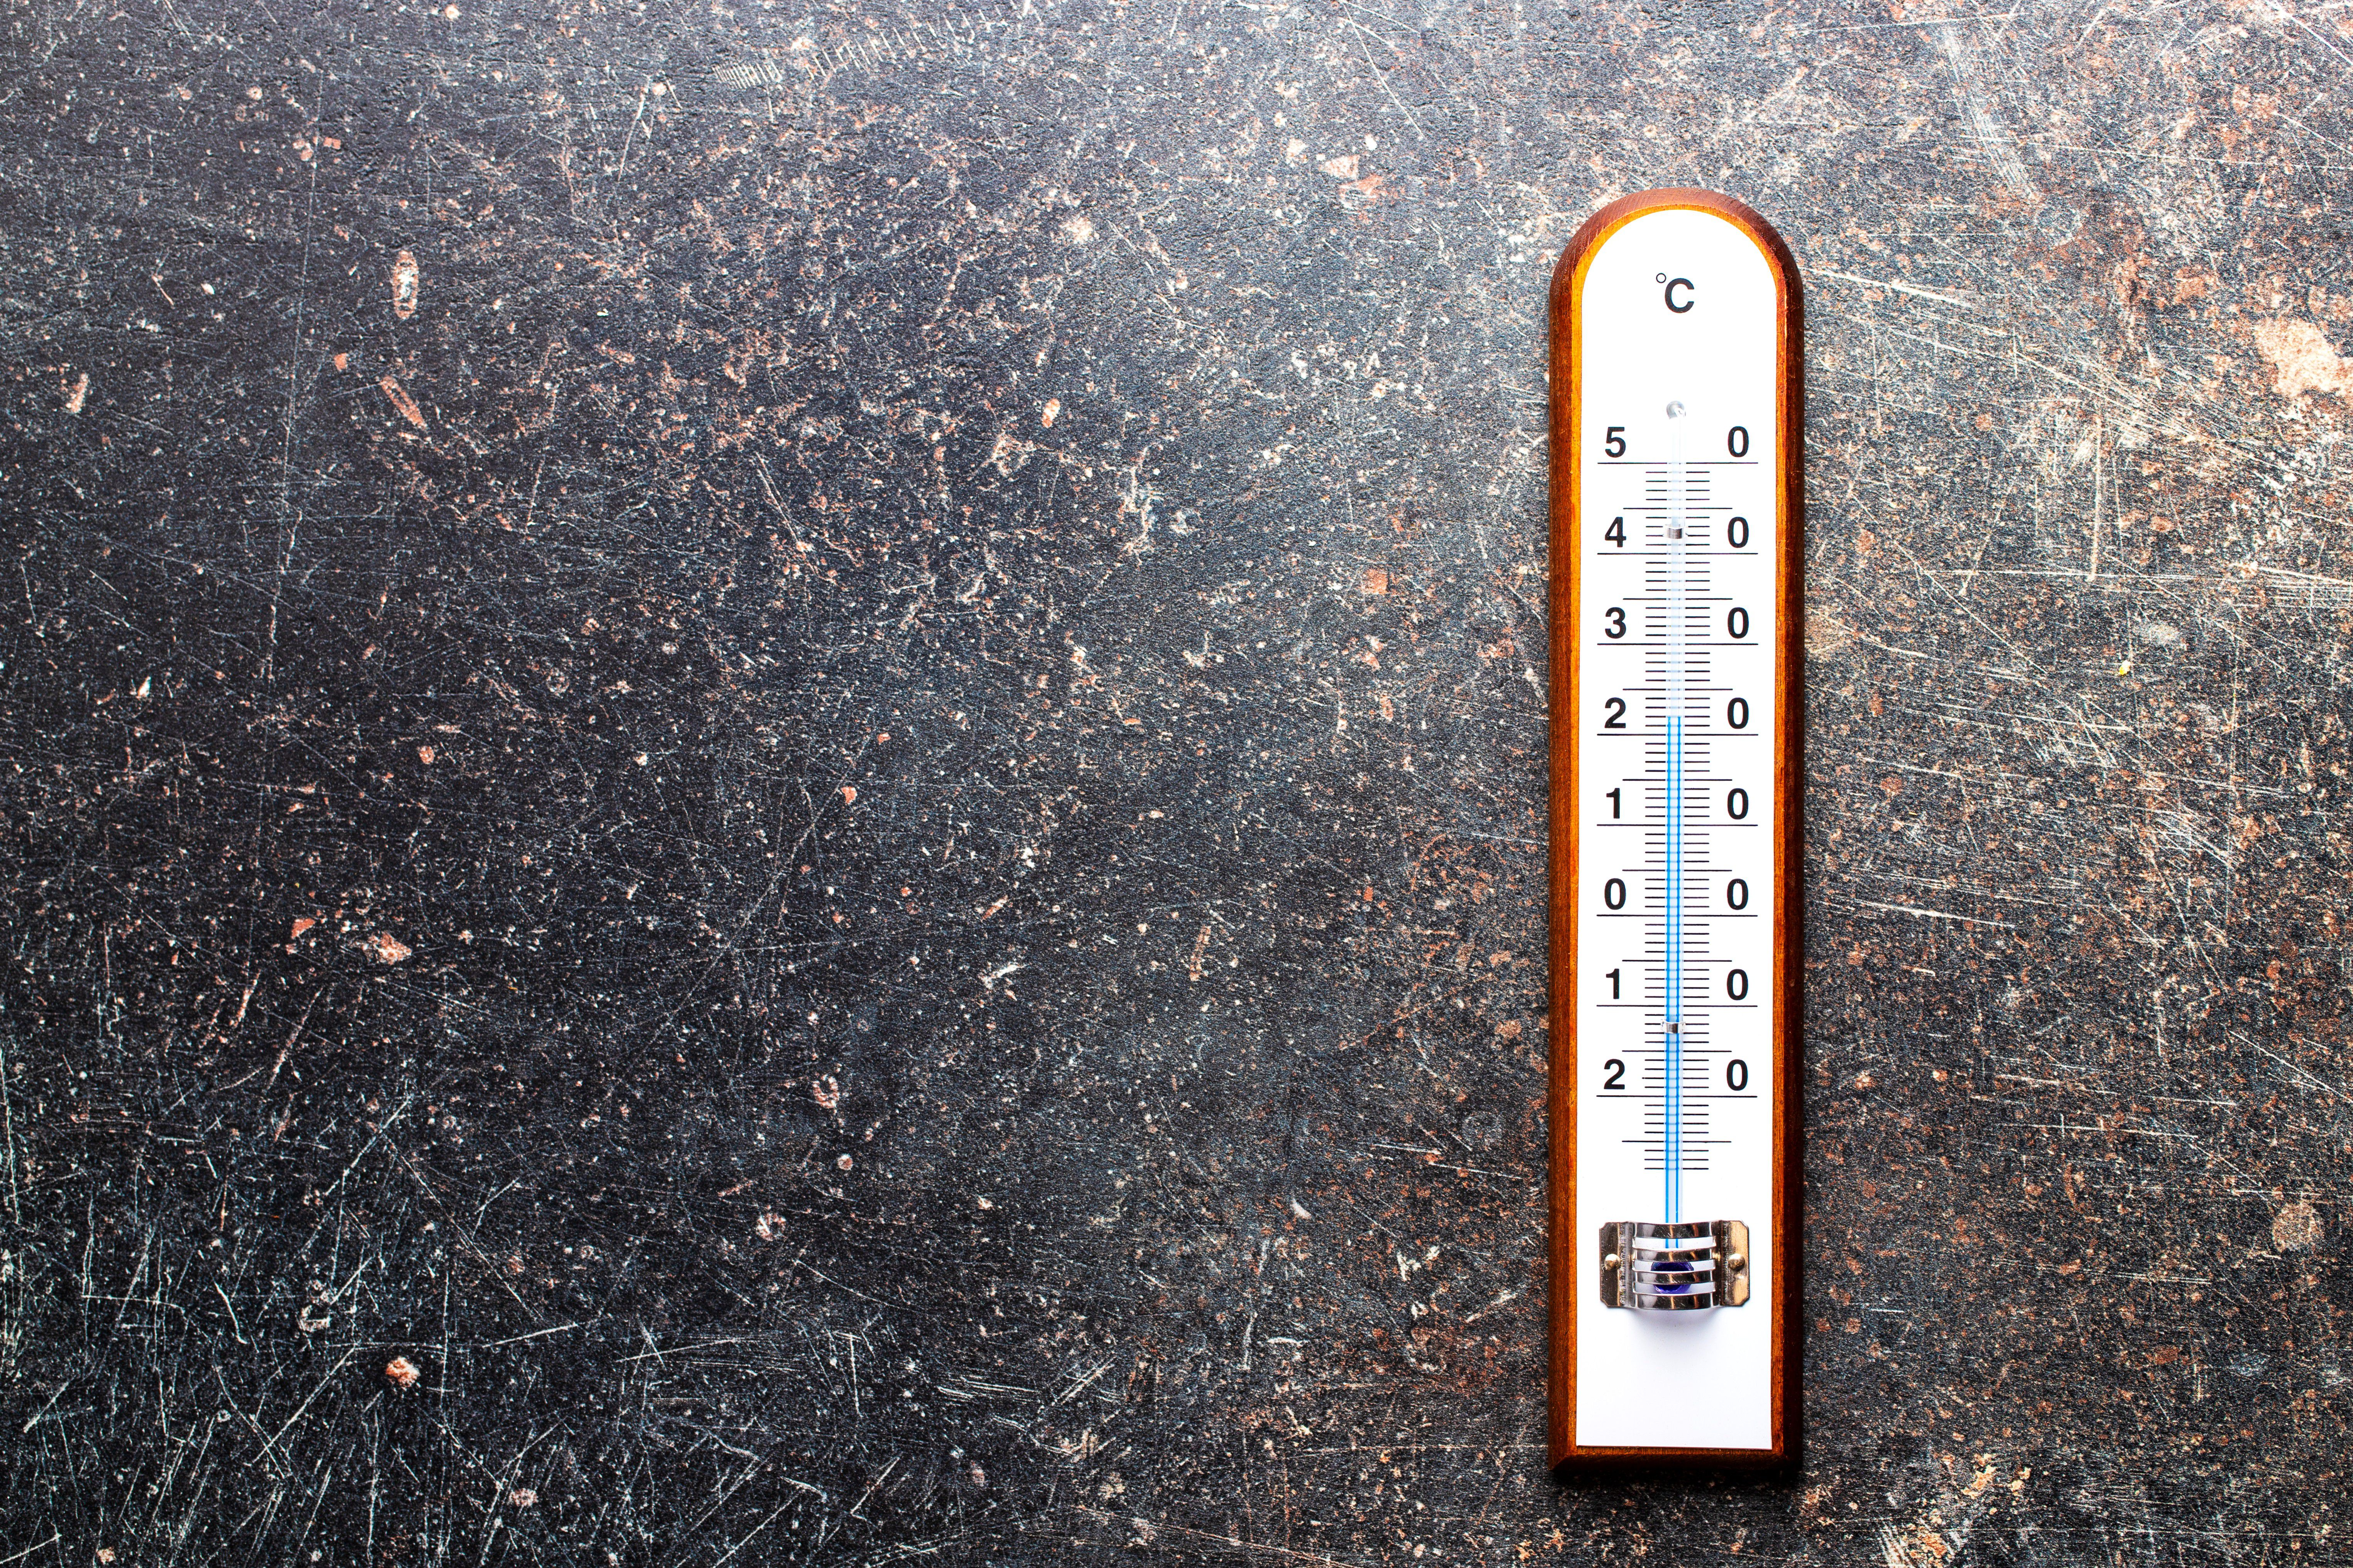 A wooden thermometer lying on a dark surface